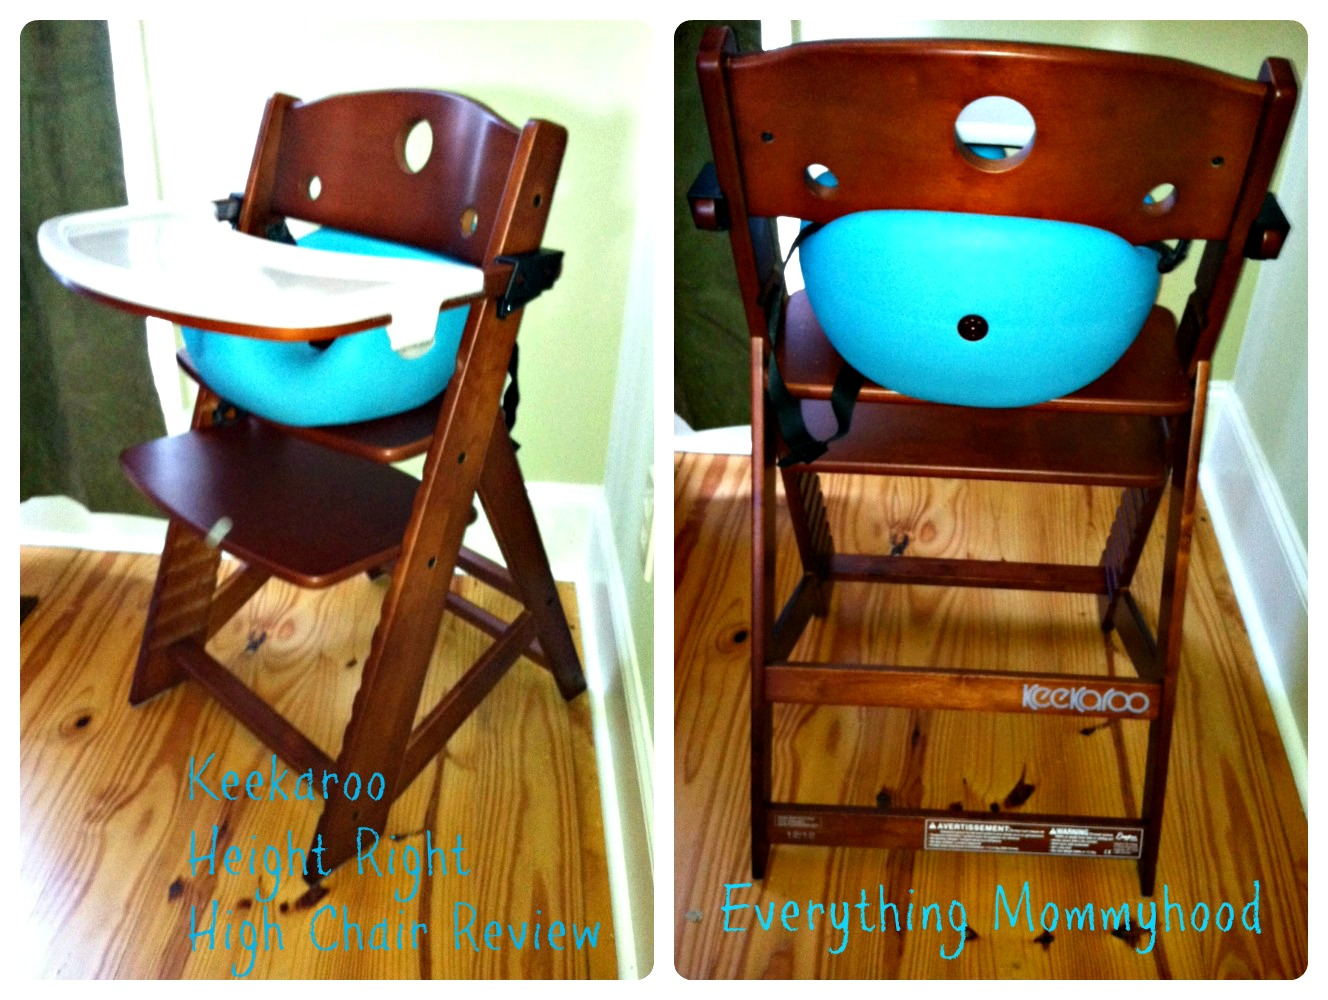 keekaroo high chair alps mountaineering grand rapids height right and accessory review